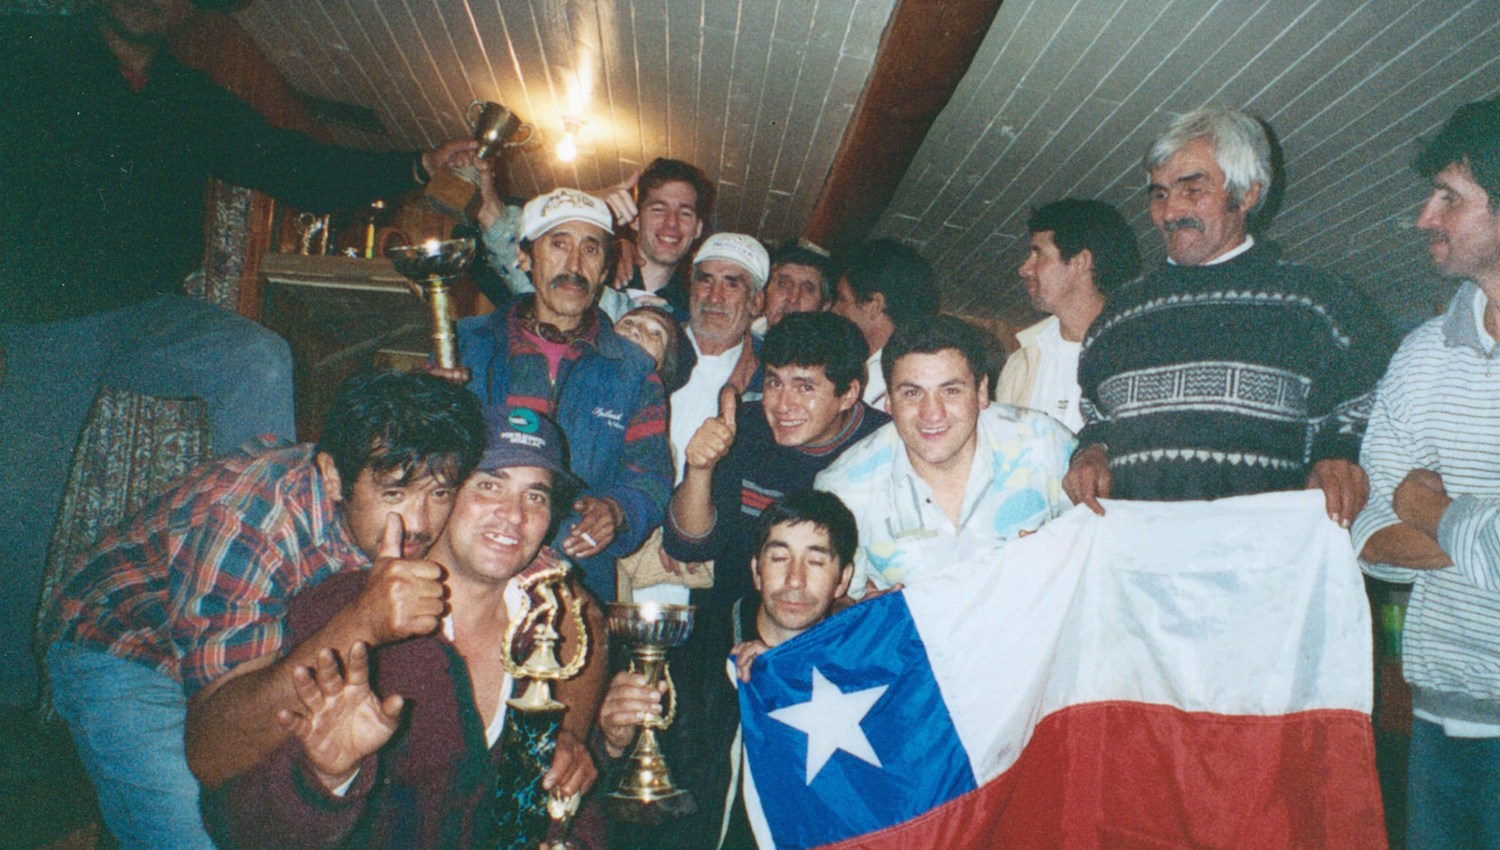 Pic: The enthusiastic (and patriotic) members of the Rayuela Club of Pucon, Chile